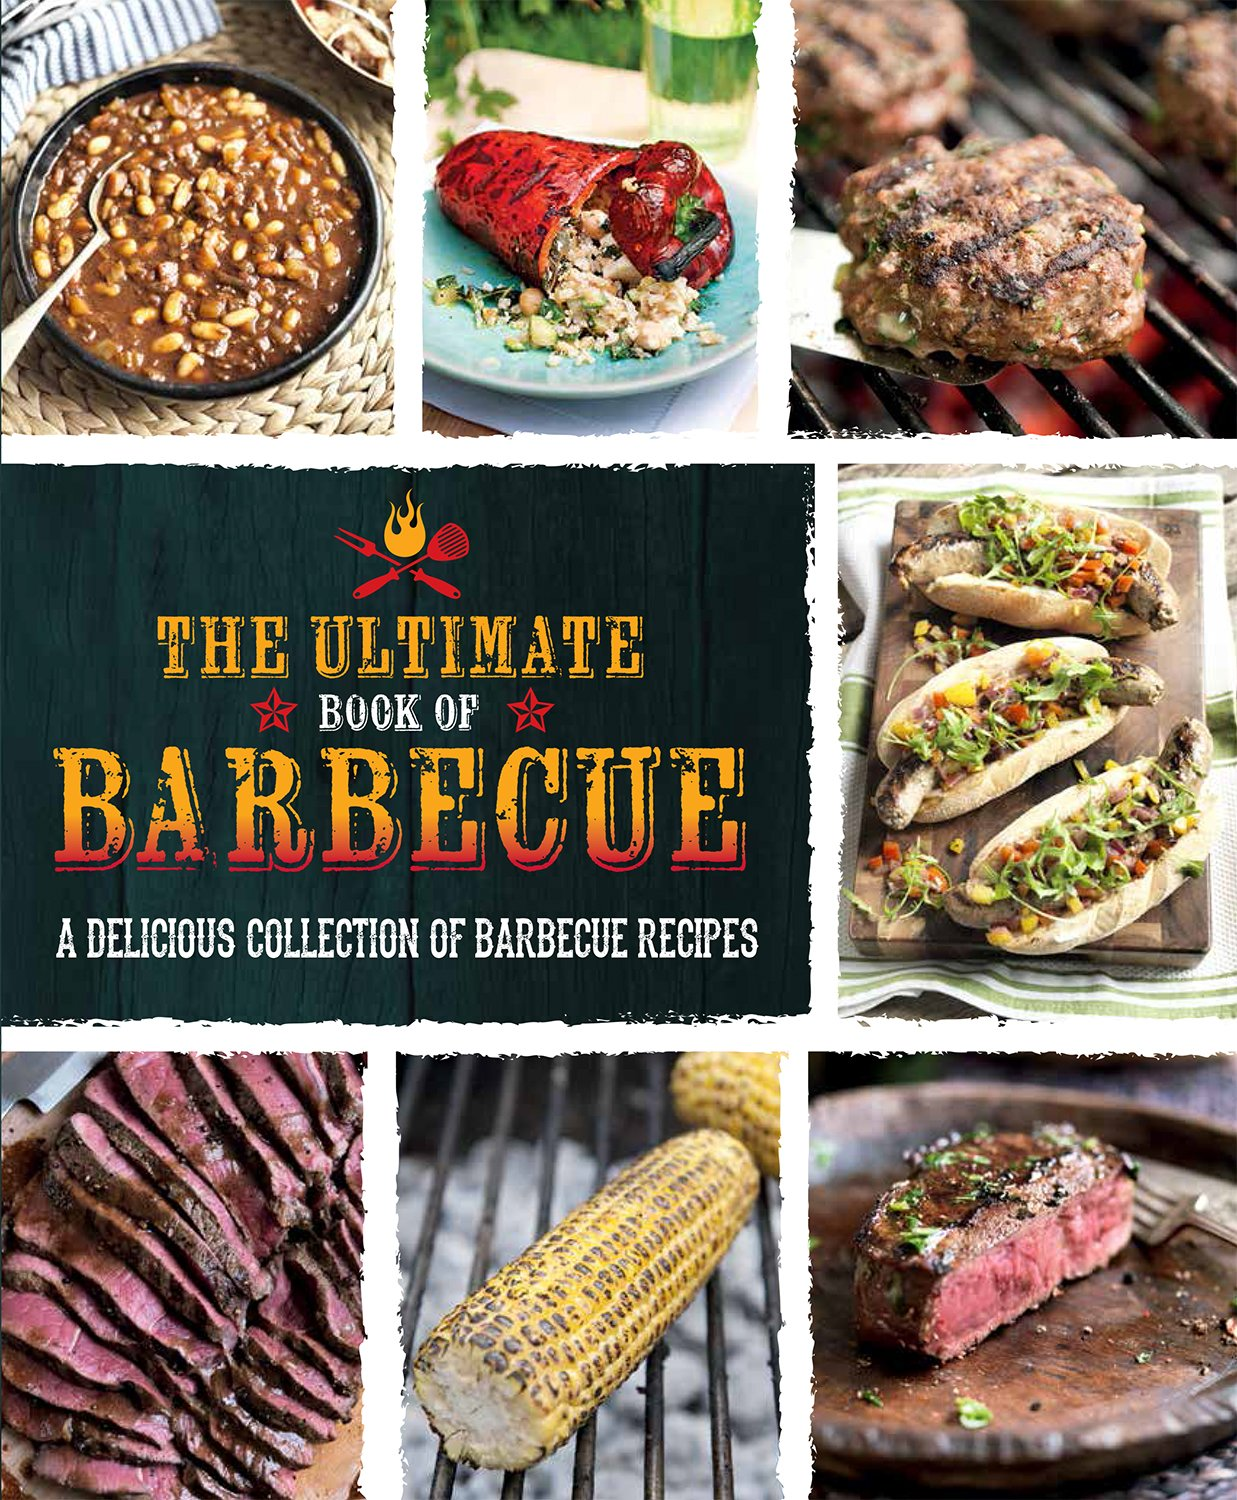 Download The Ultimate Book Of Barbecue (Barbecue Book) 